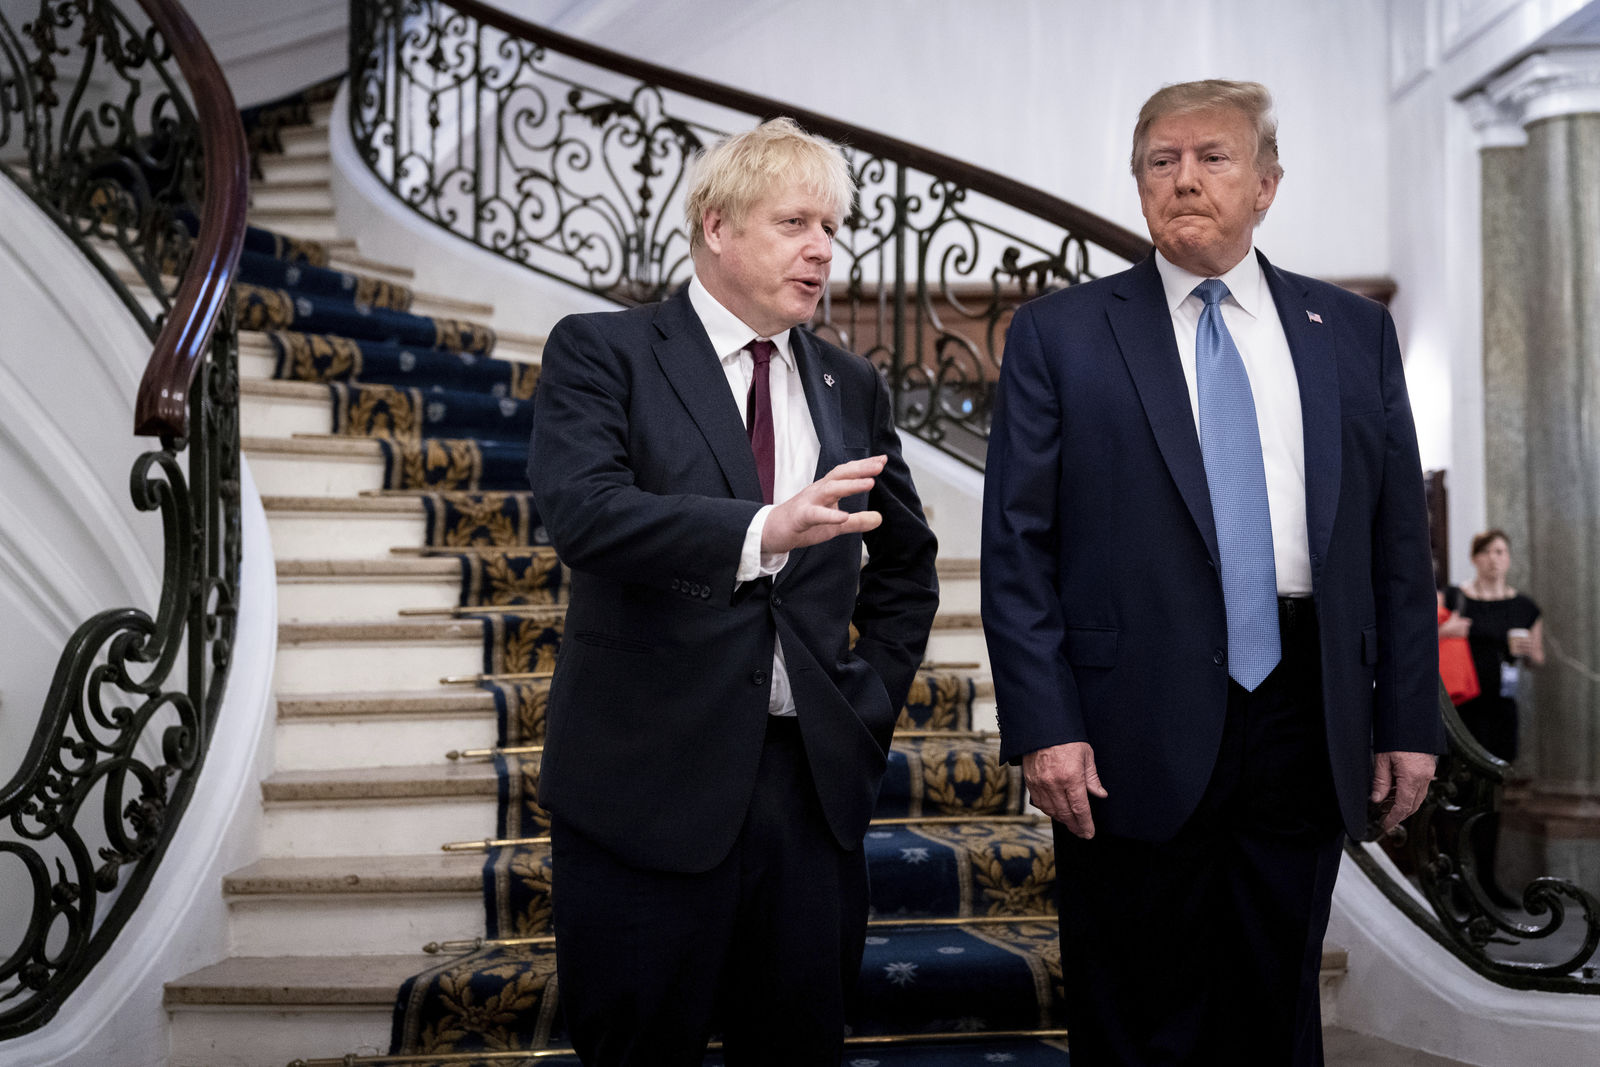 FILE - In this Aug. 25, 2019, file photo, President Donald Trump and Britain's Prime Minister Boris Johnson, left, speak to the media before a working breakfast meeting at the Hotel du Palais on the sidelines of the G-7 summit in Biarritz, France. (Erin Schaff/The New York Times, Pool, File)